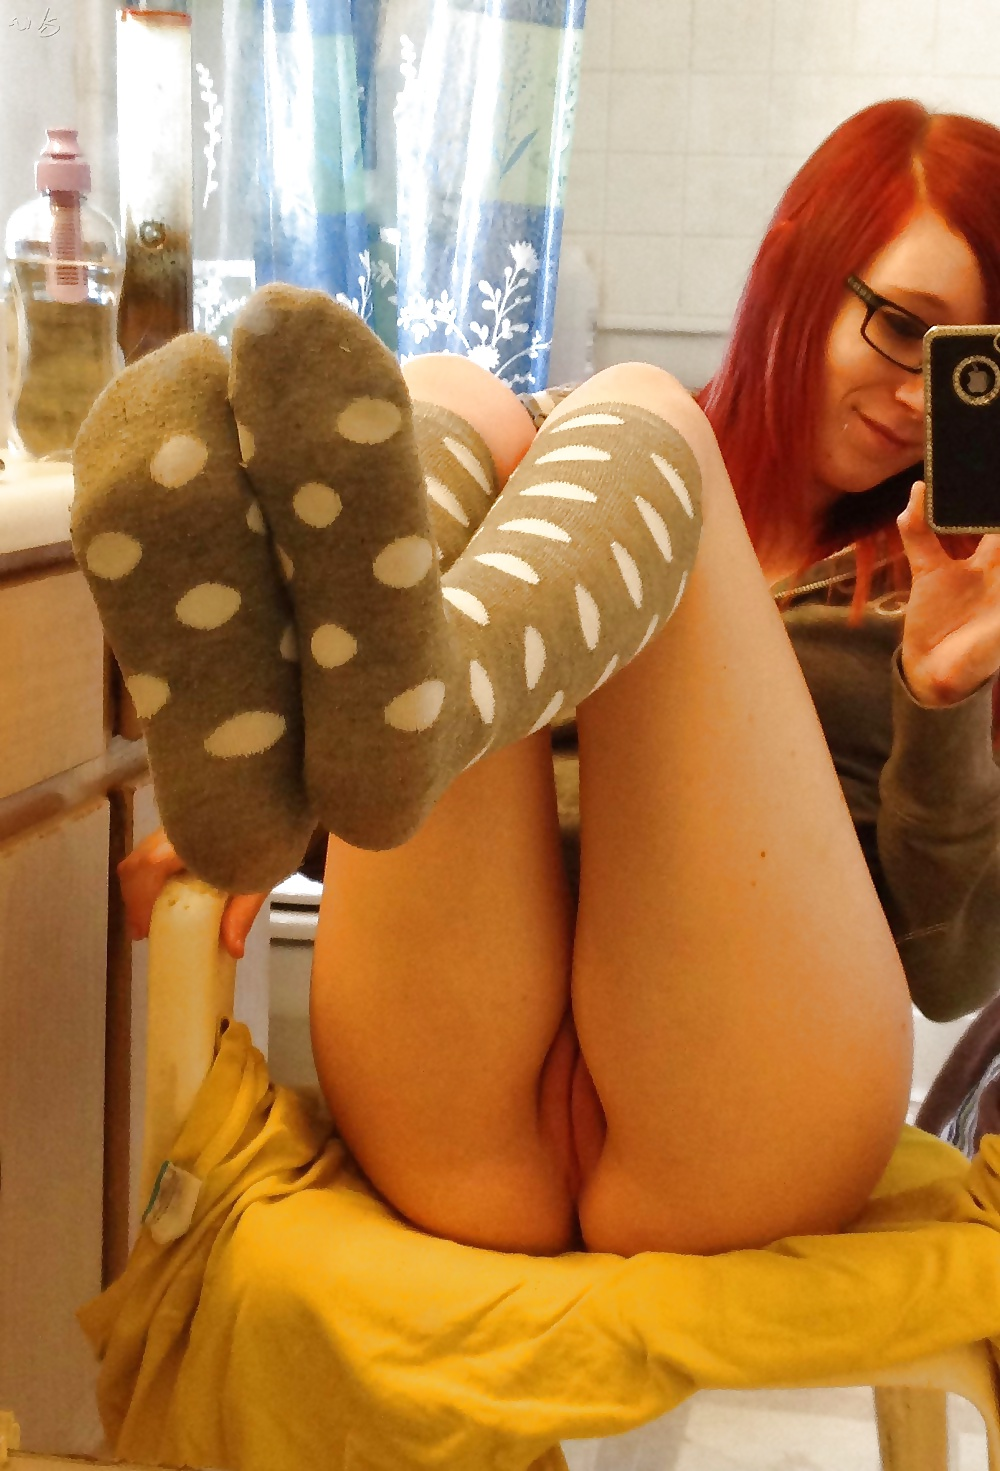 teen-nude-ass-glasses-self-braces-girl